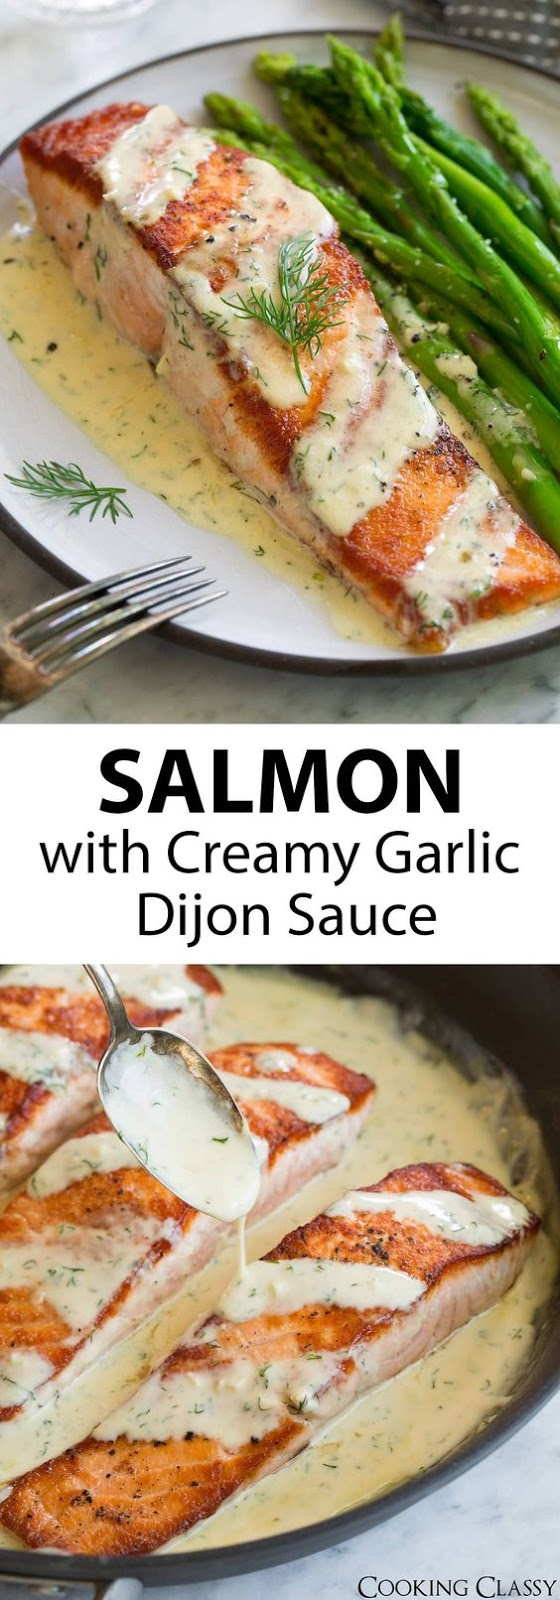 Delicious Pan Seared Salmon with Creamy Garlic Dijon Sauce Recipe